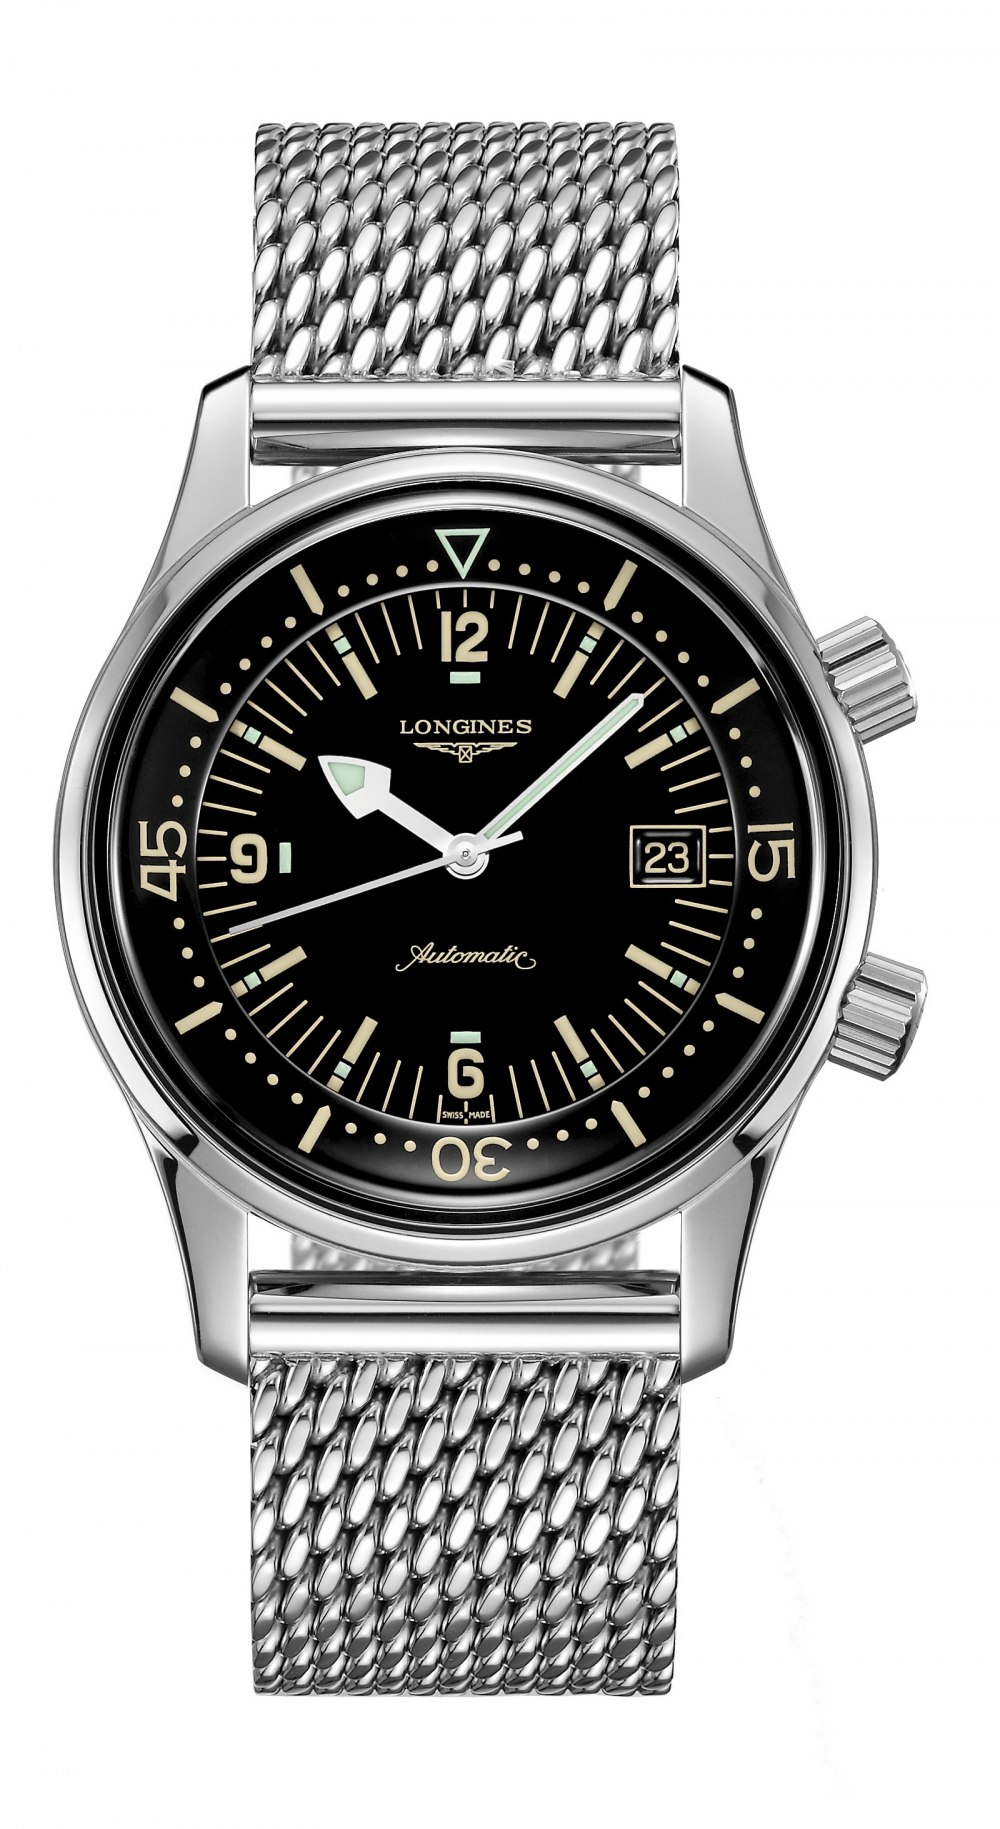 LONGINES The Longines Legend Diver Watch L36744506